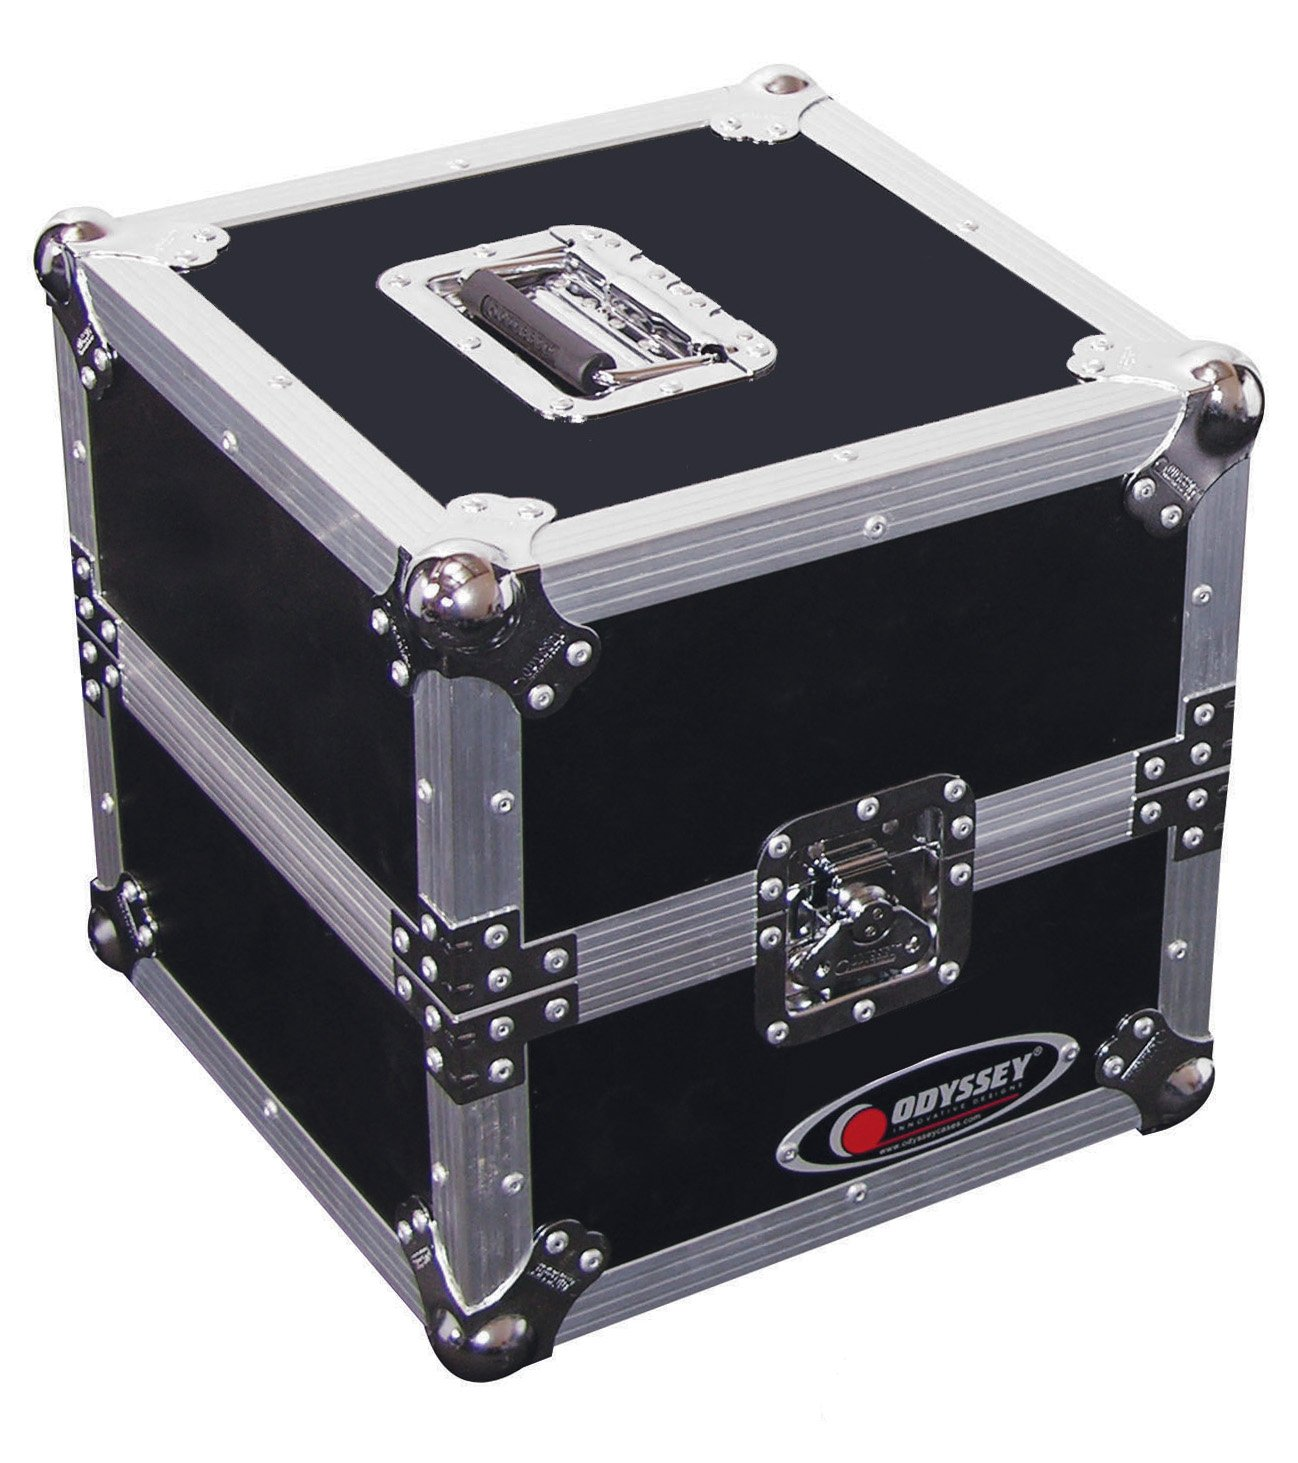 Odyssey FZLP80 Flight Zone Lp Ata Case: Holds Up To 80 Lp Records by ODYSSEY